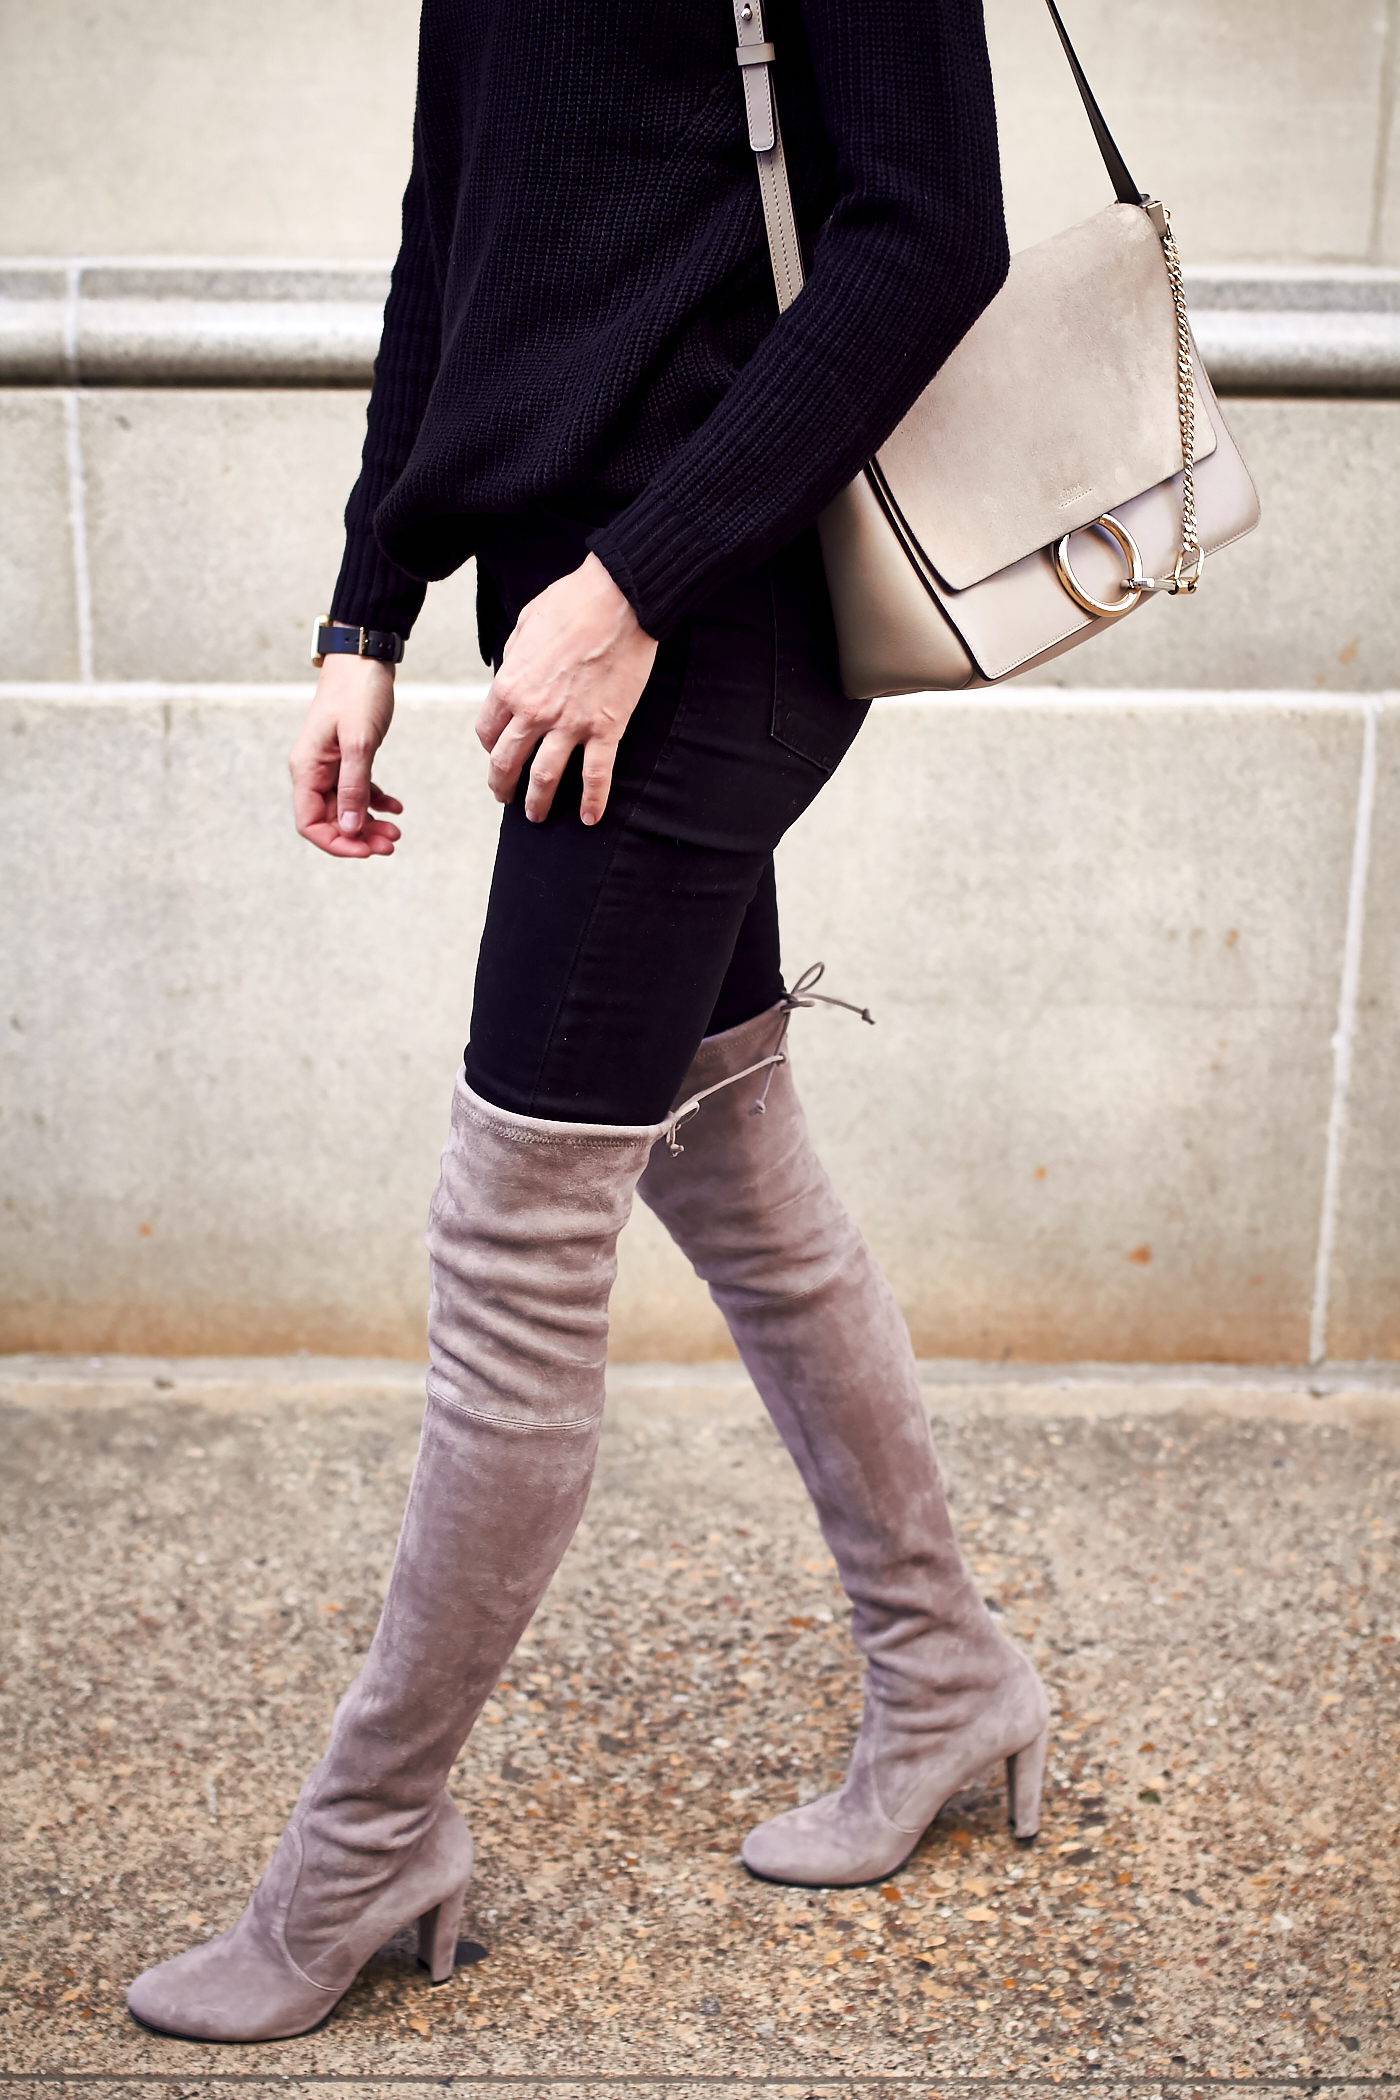 Stuart Weitzman Highland Over the Knee Boots, Black Sweater, Black Skinny Jeans, Chloe Faye Medium Handbag, Black Celine Sunglasses, Fall Outfit